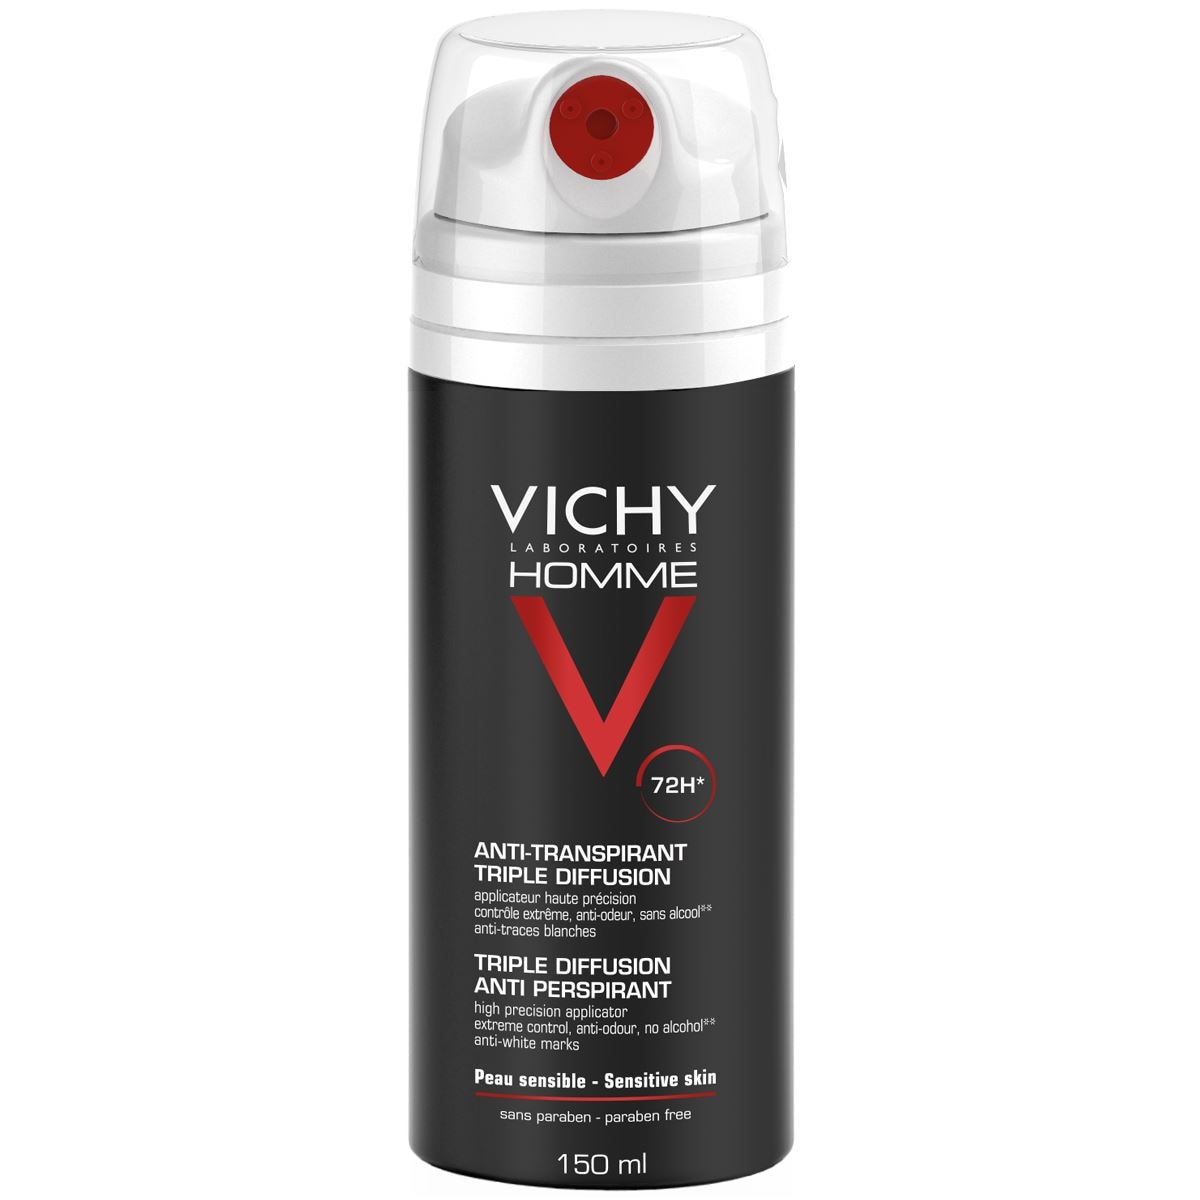 Vichy Homme Deo Spray 72h 150ml 15